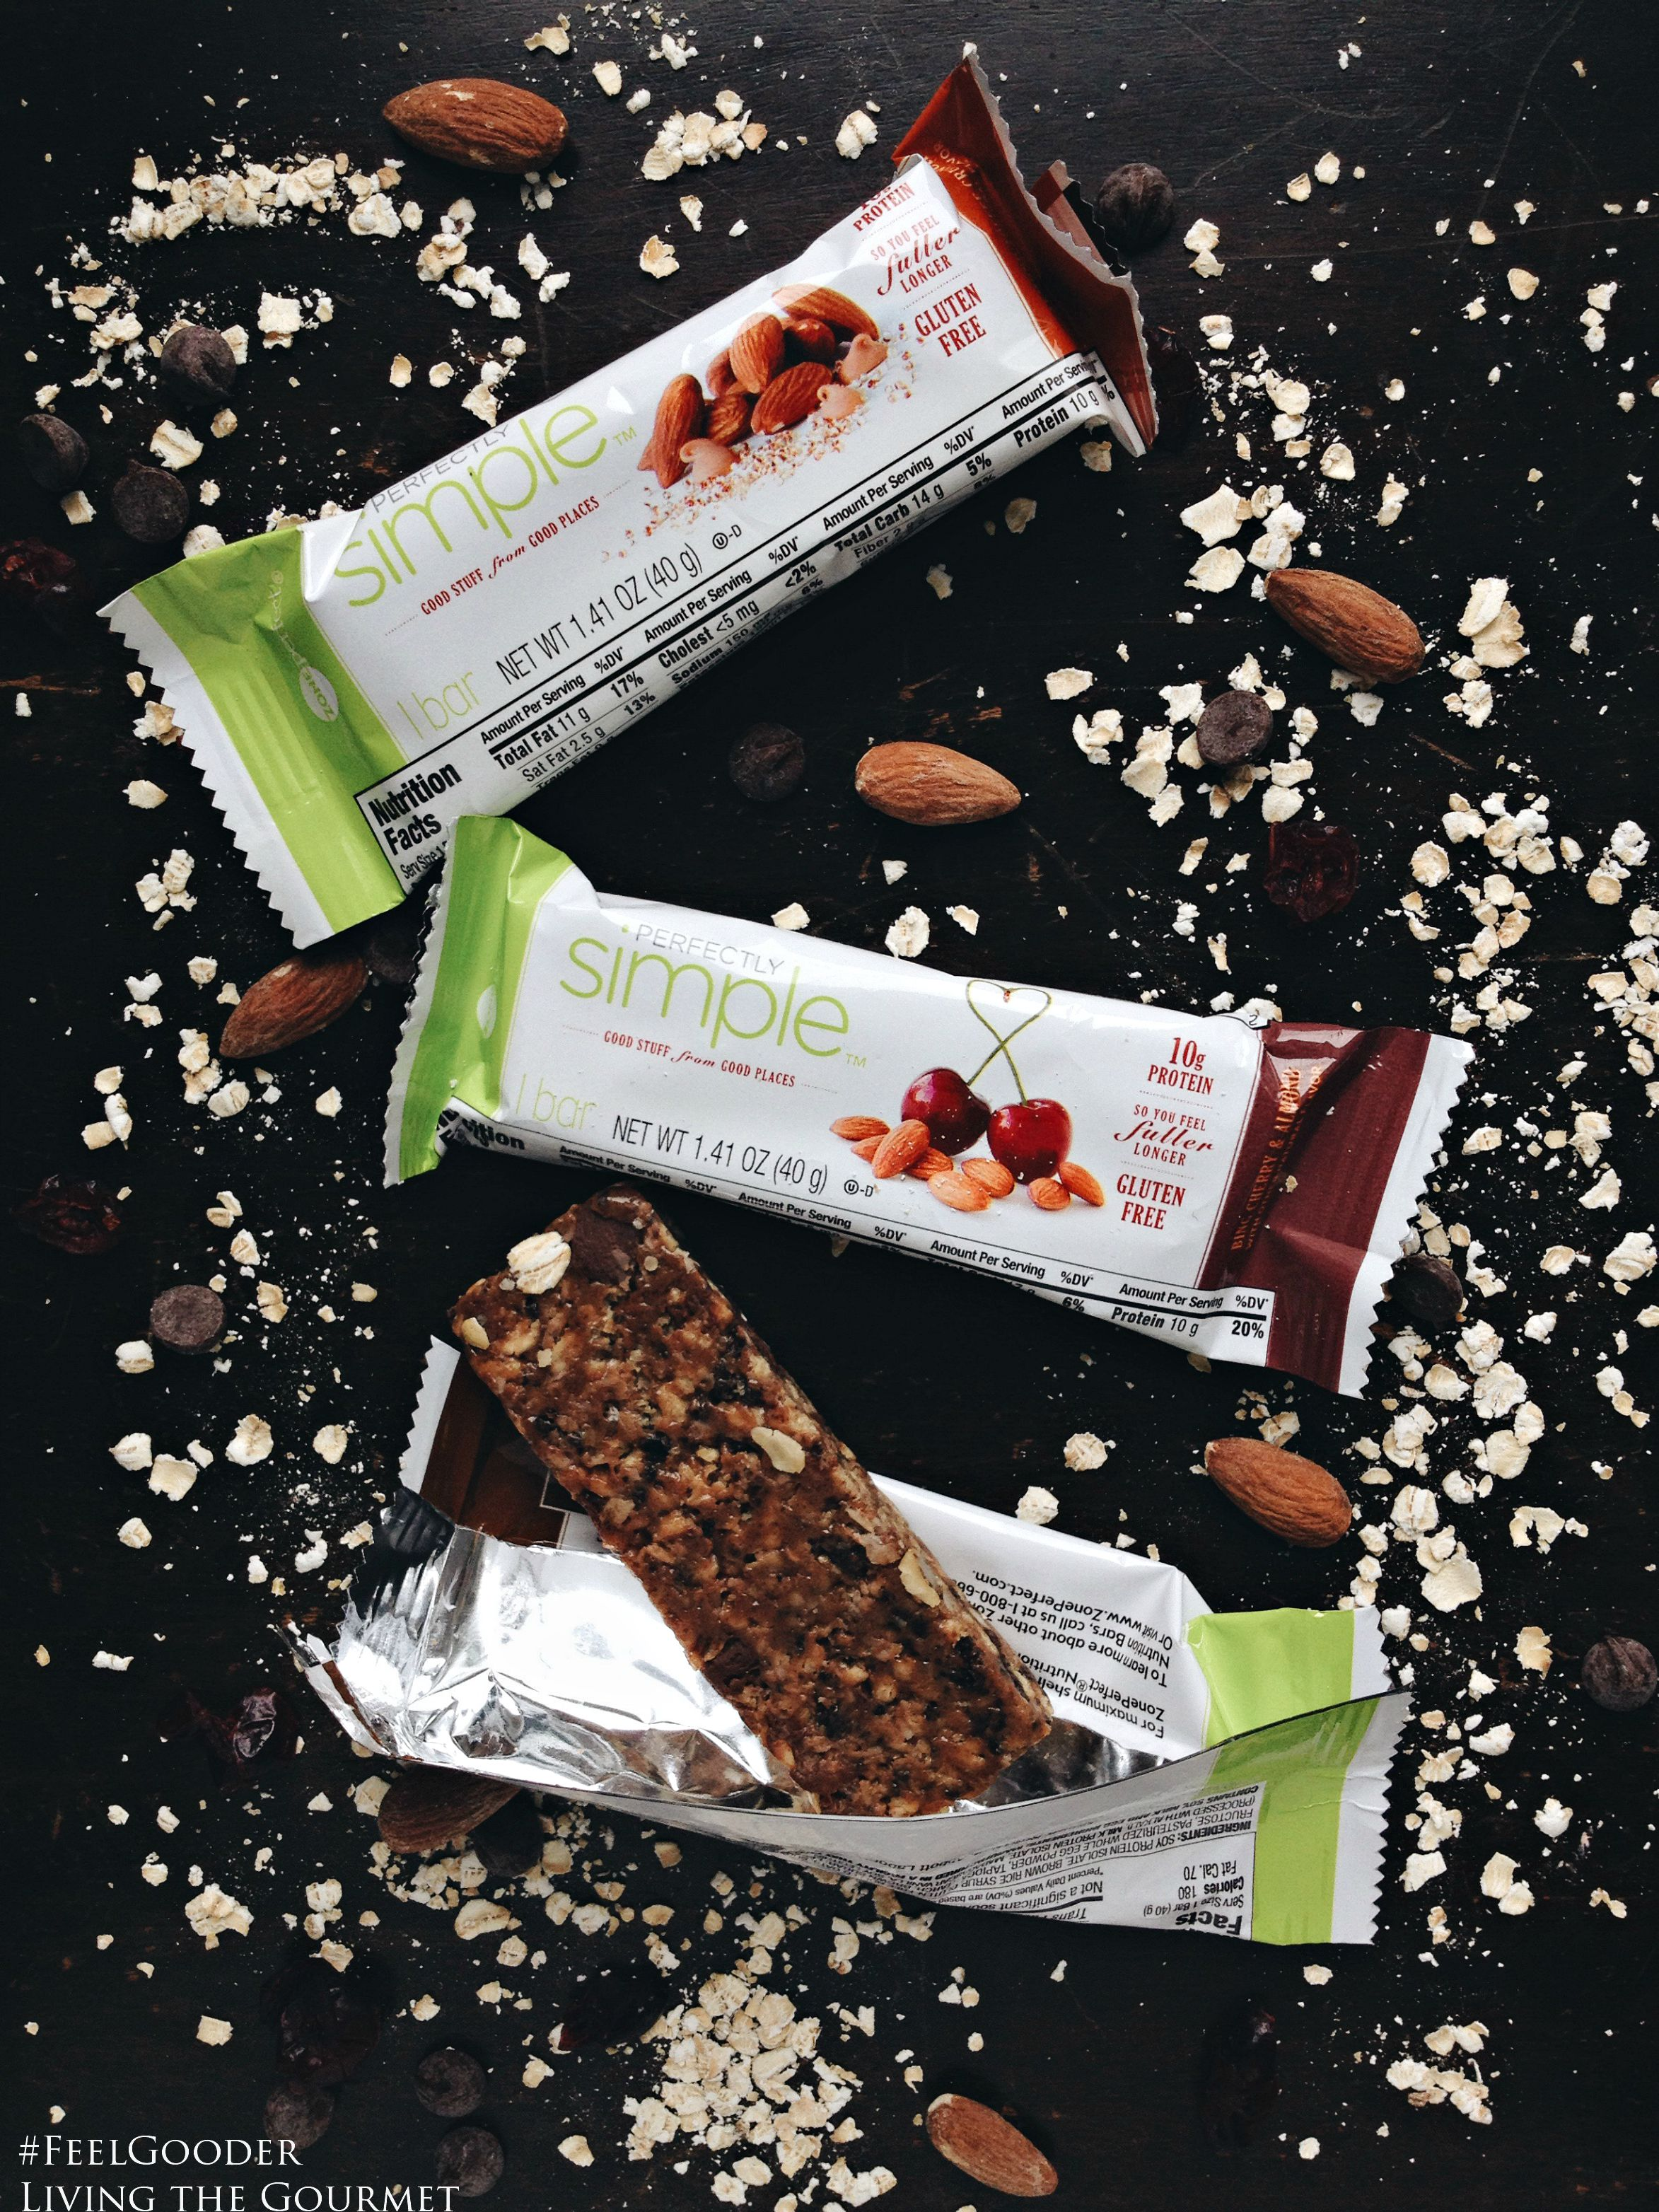 Living the Gourmet: #FeelGooder with ZonePerfect Perfectly Simple nutrition bars